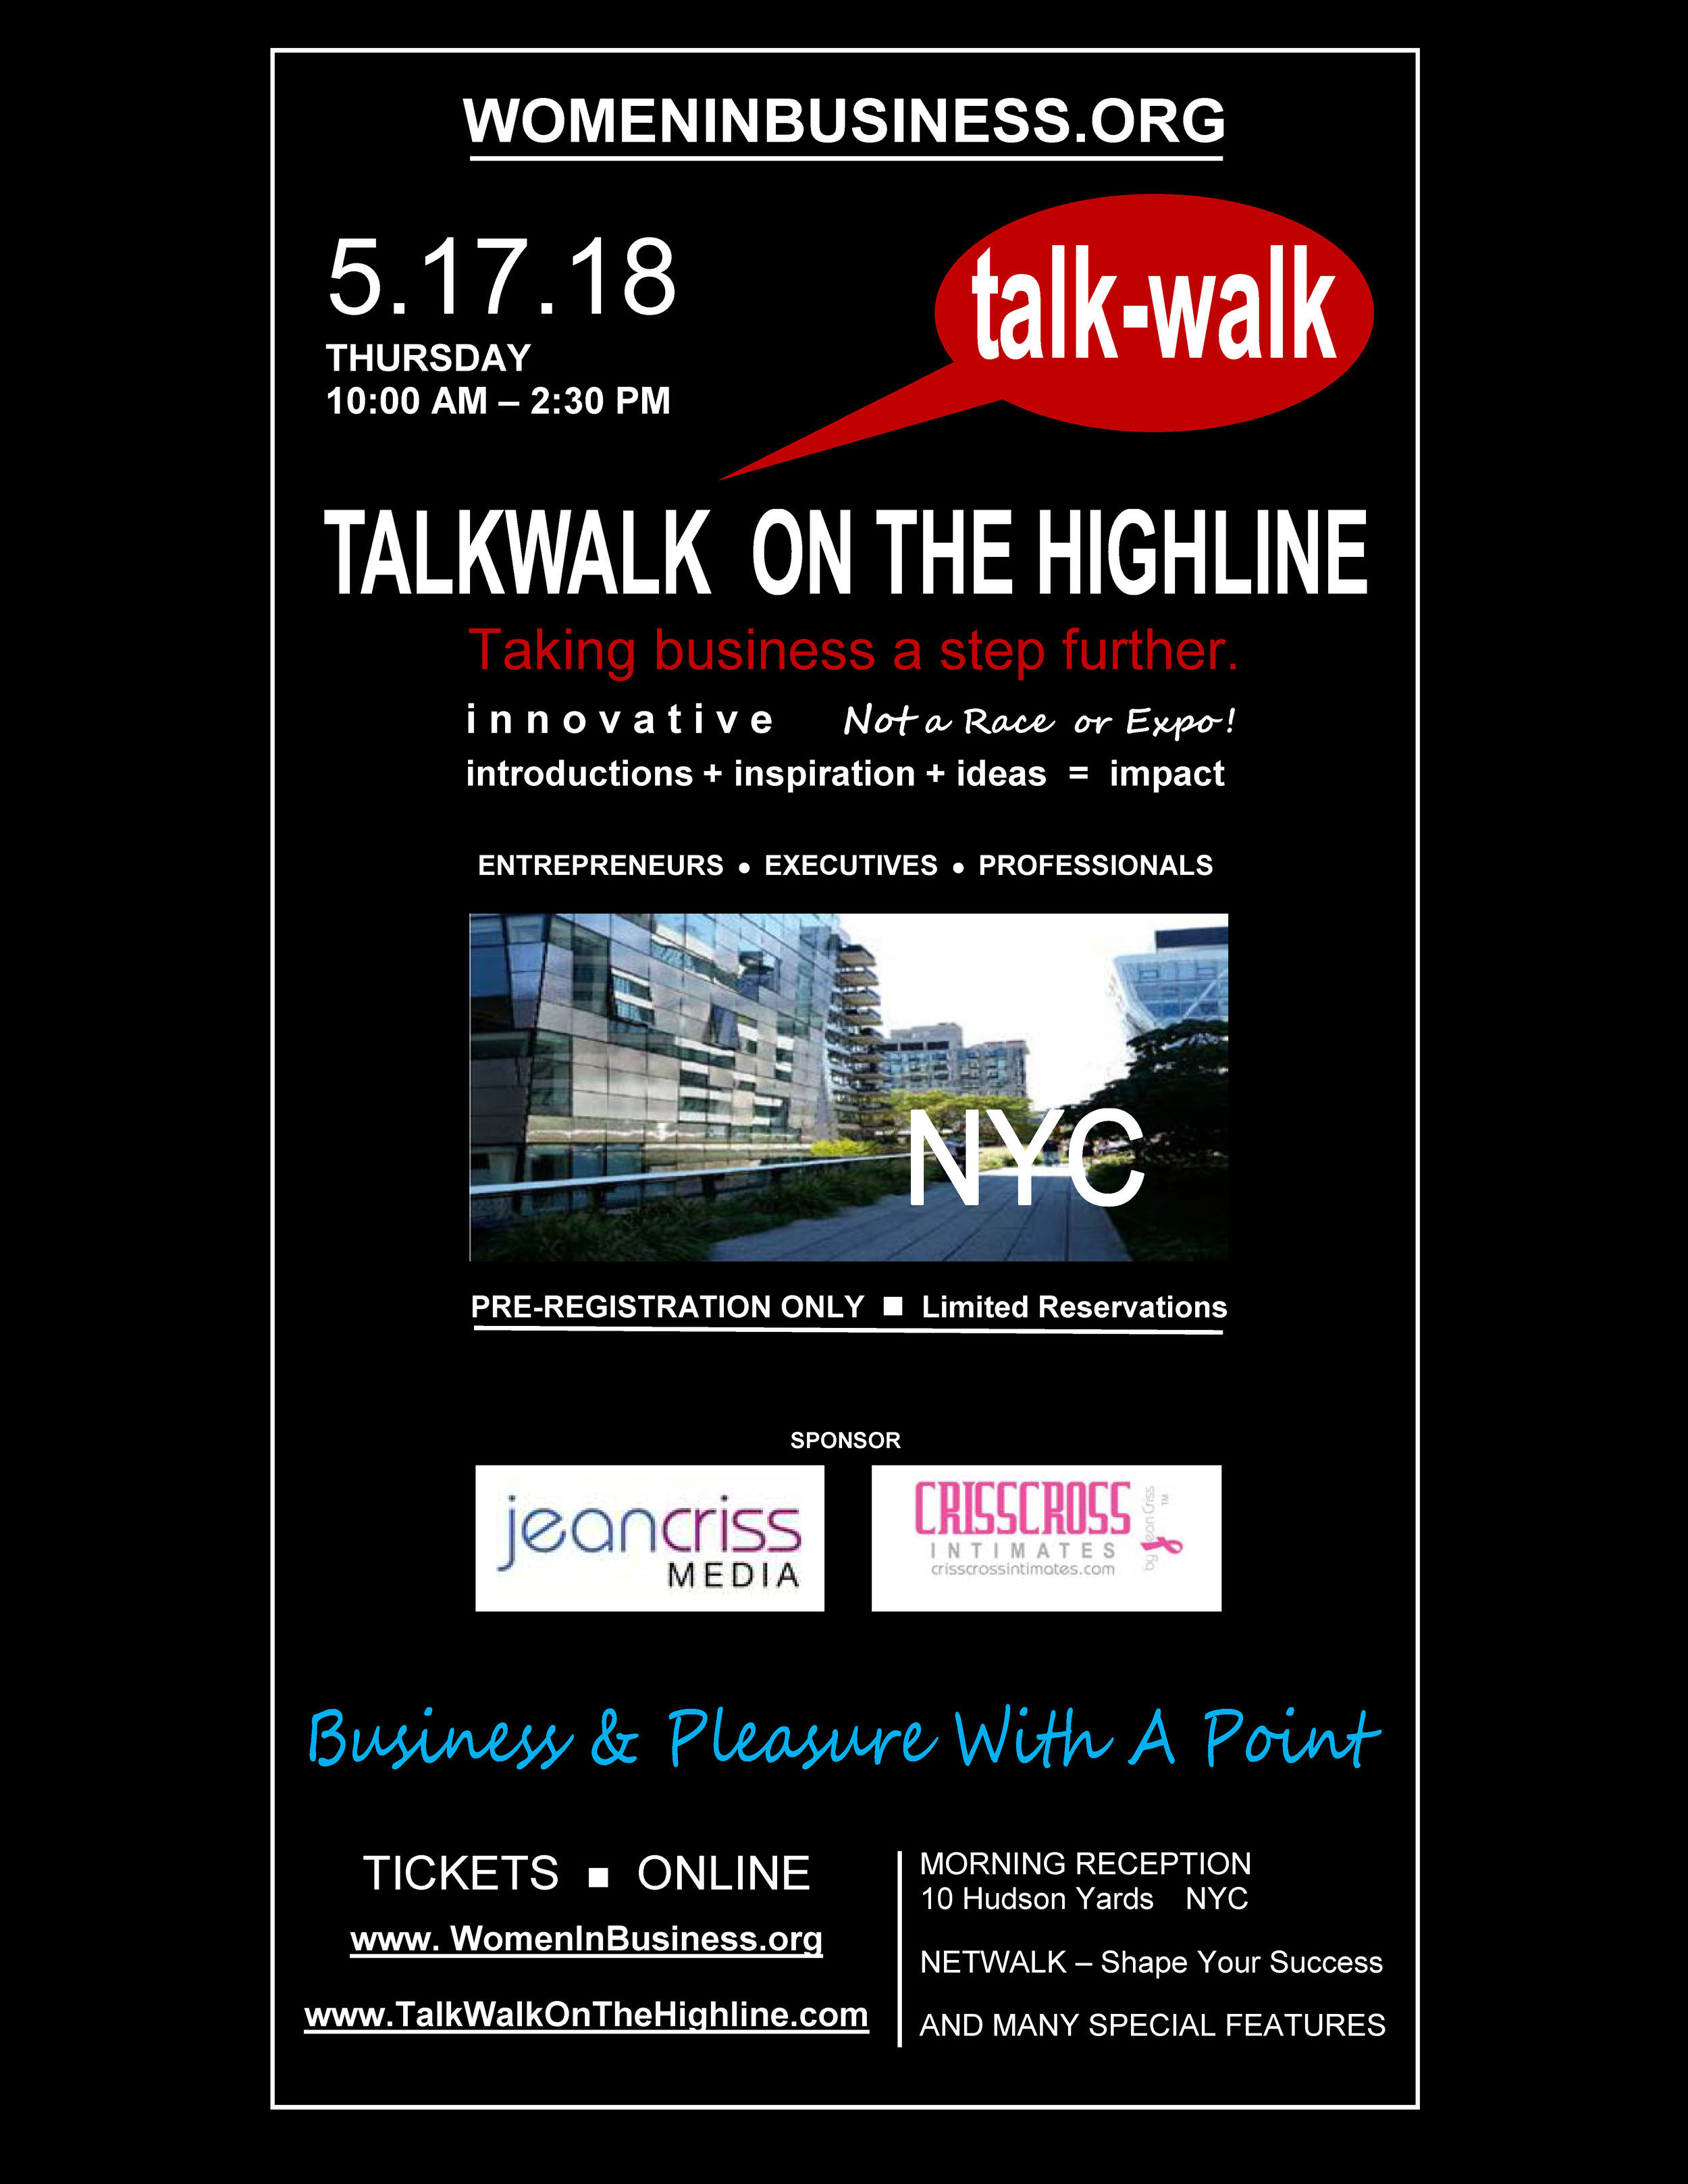 crisscross - TALKWALK ON THE HIGHLINE WomenInBusiness.Org.jpg